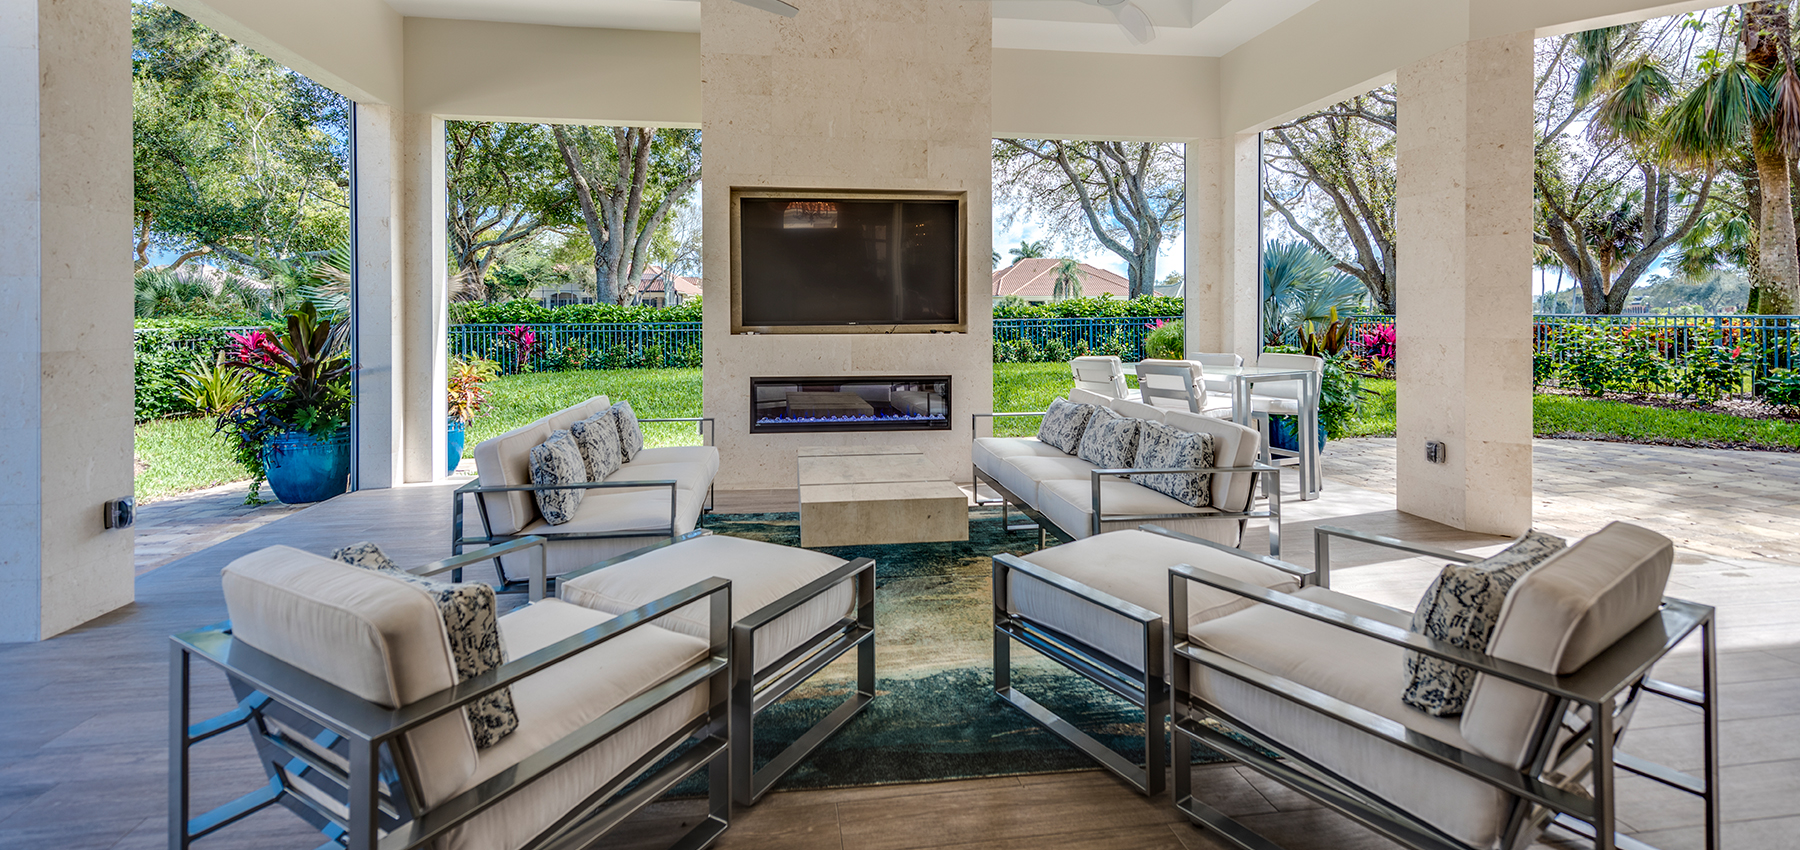 OUTDOOR LIVING REMODEL IN NAPLES, FLORIDA